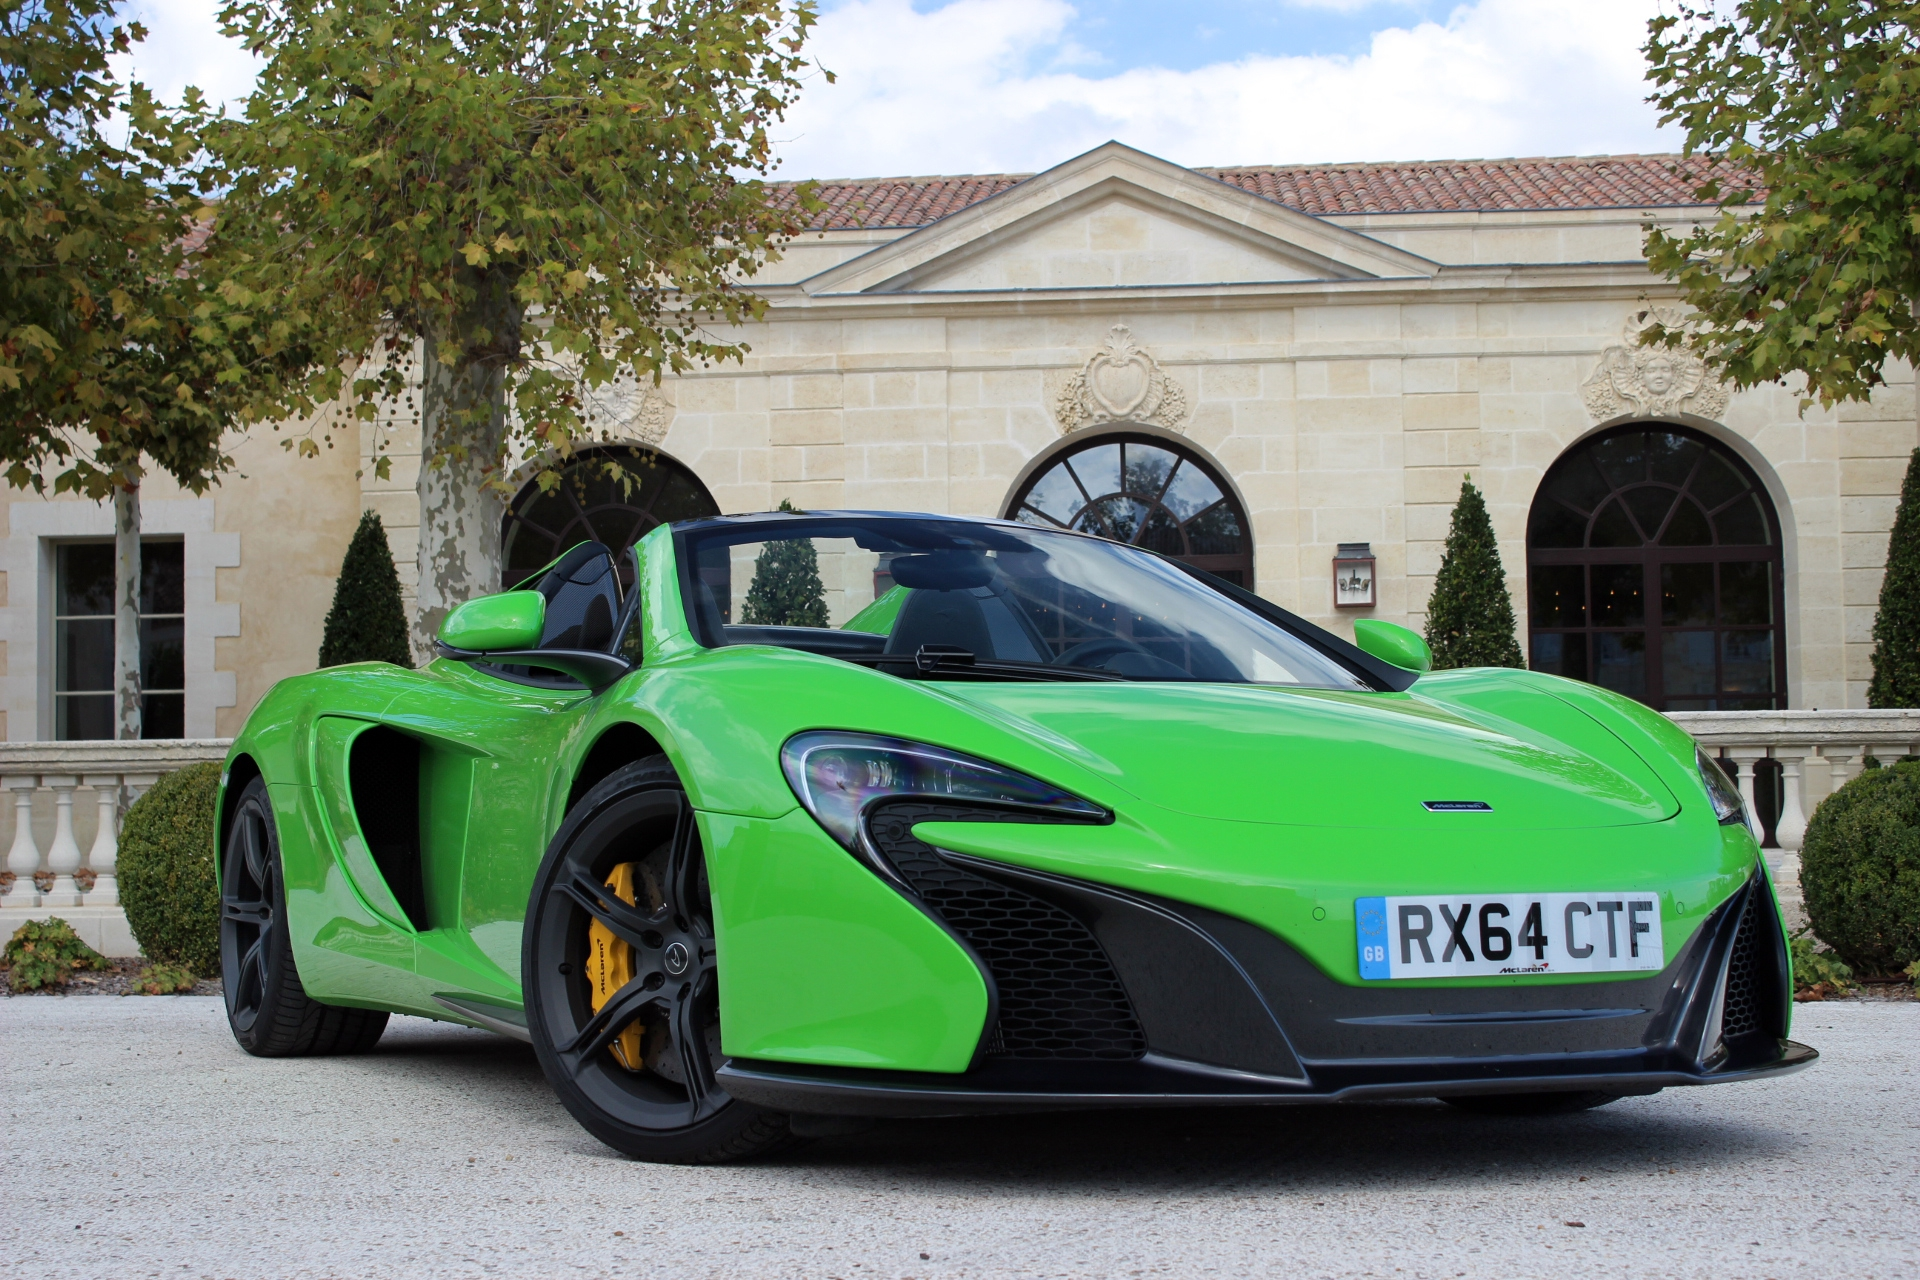 http://images.caradisiac.com/images/7/6/0/7/97607/S0-Essai-video-McLaren-650S-Spider-proche-de-la-perfection-332807.jpg